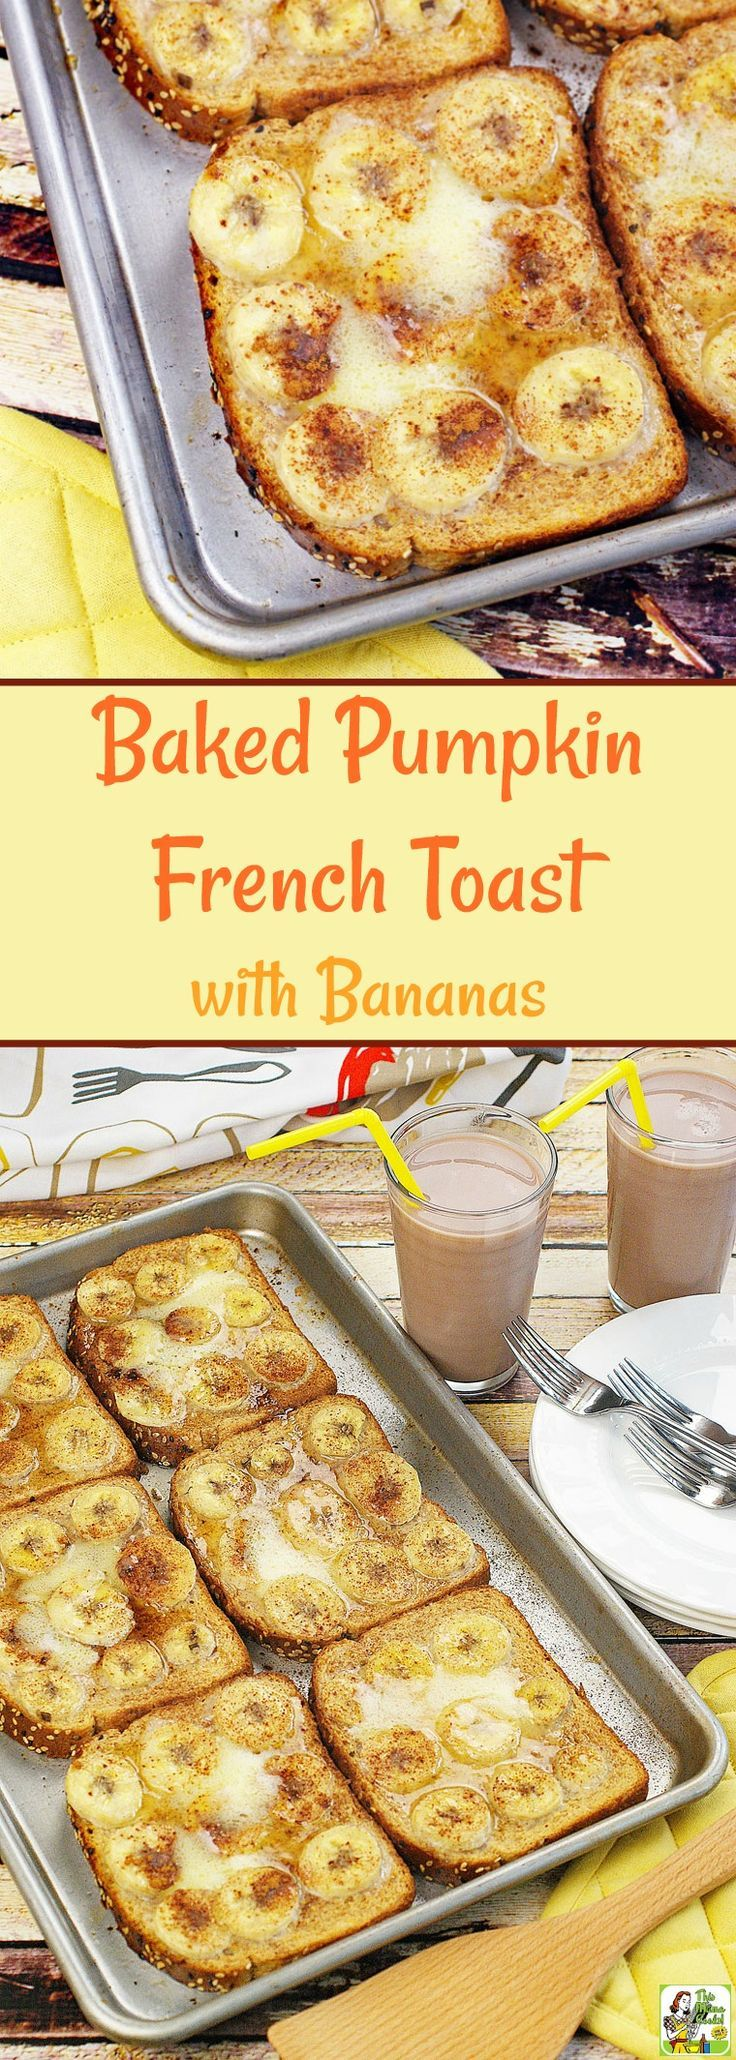 This Baked Pumpkin French Toast with Bananas is a terrific gluten free breakfast recipe. This oven baked French toast recipe is made extra special with chocolate milk. Baked French toast recipes take less time to make and are healthier than frying them in